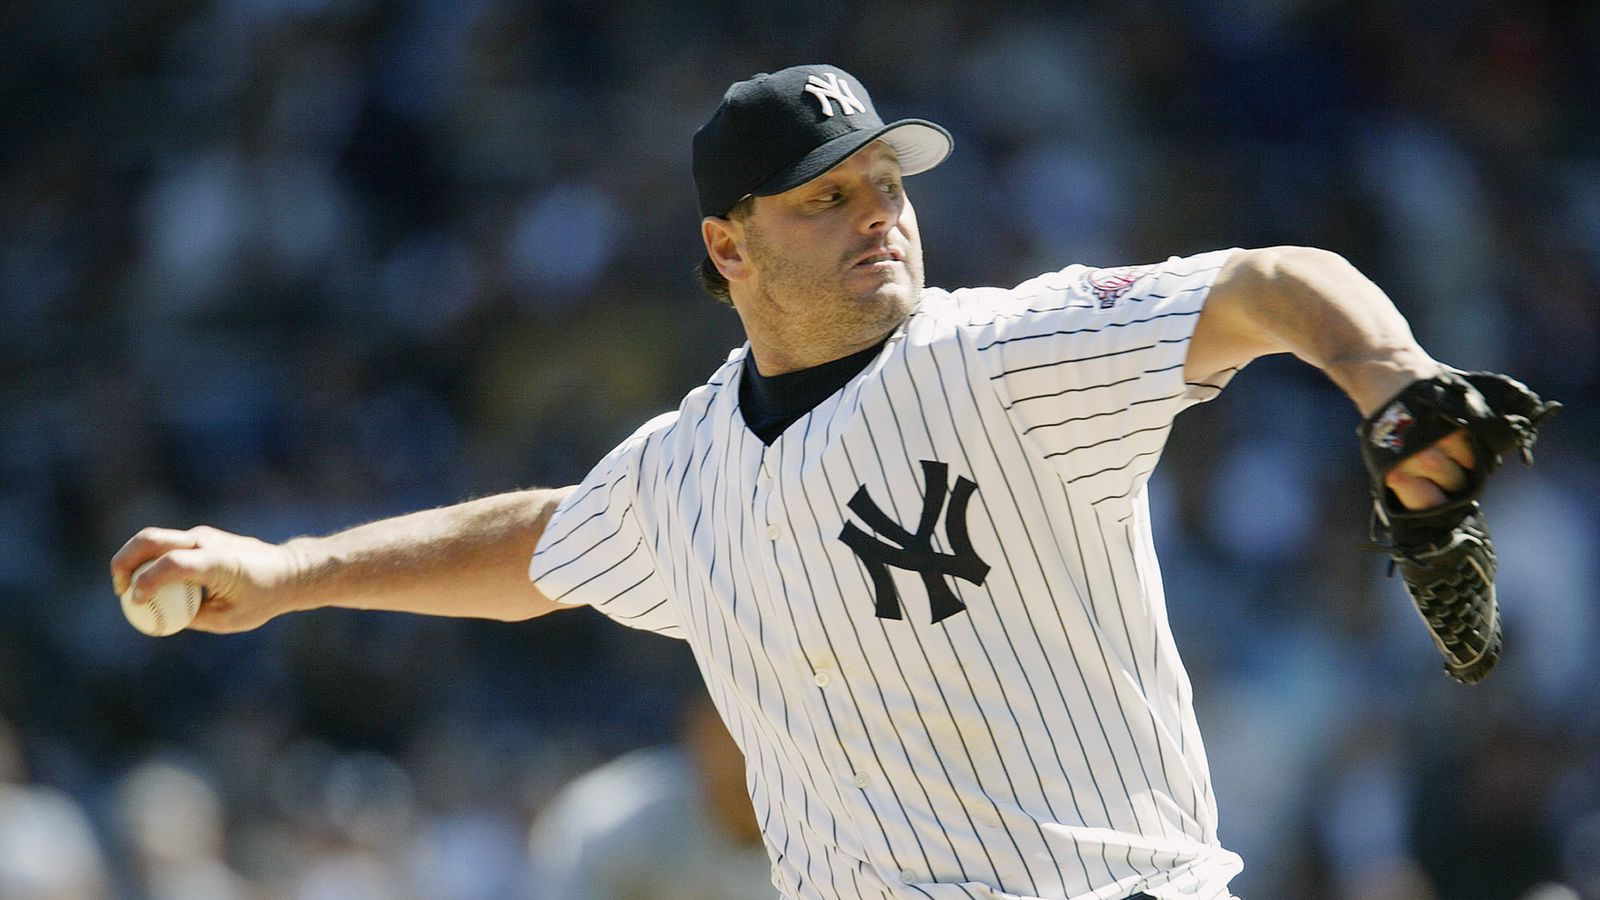 Roger clemens and young girl #10